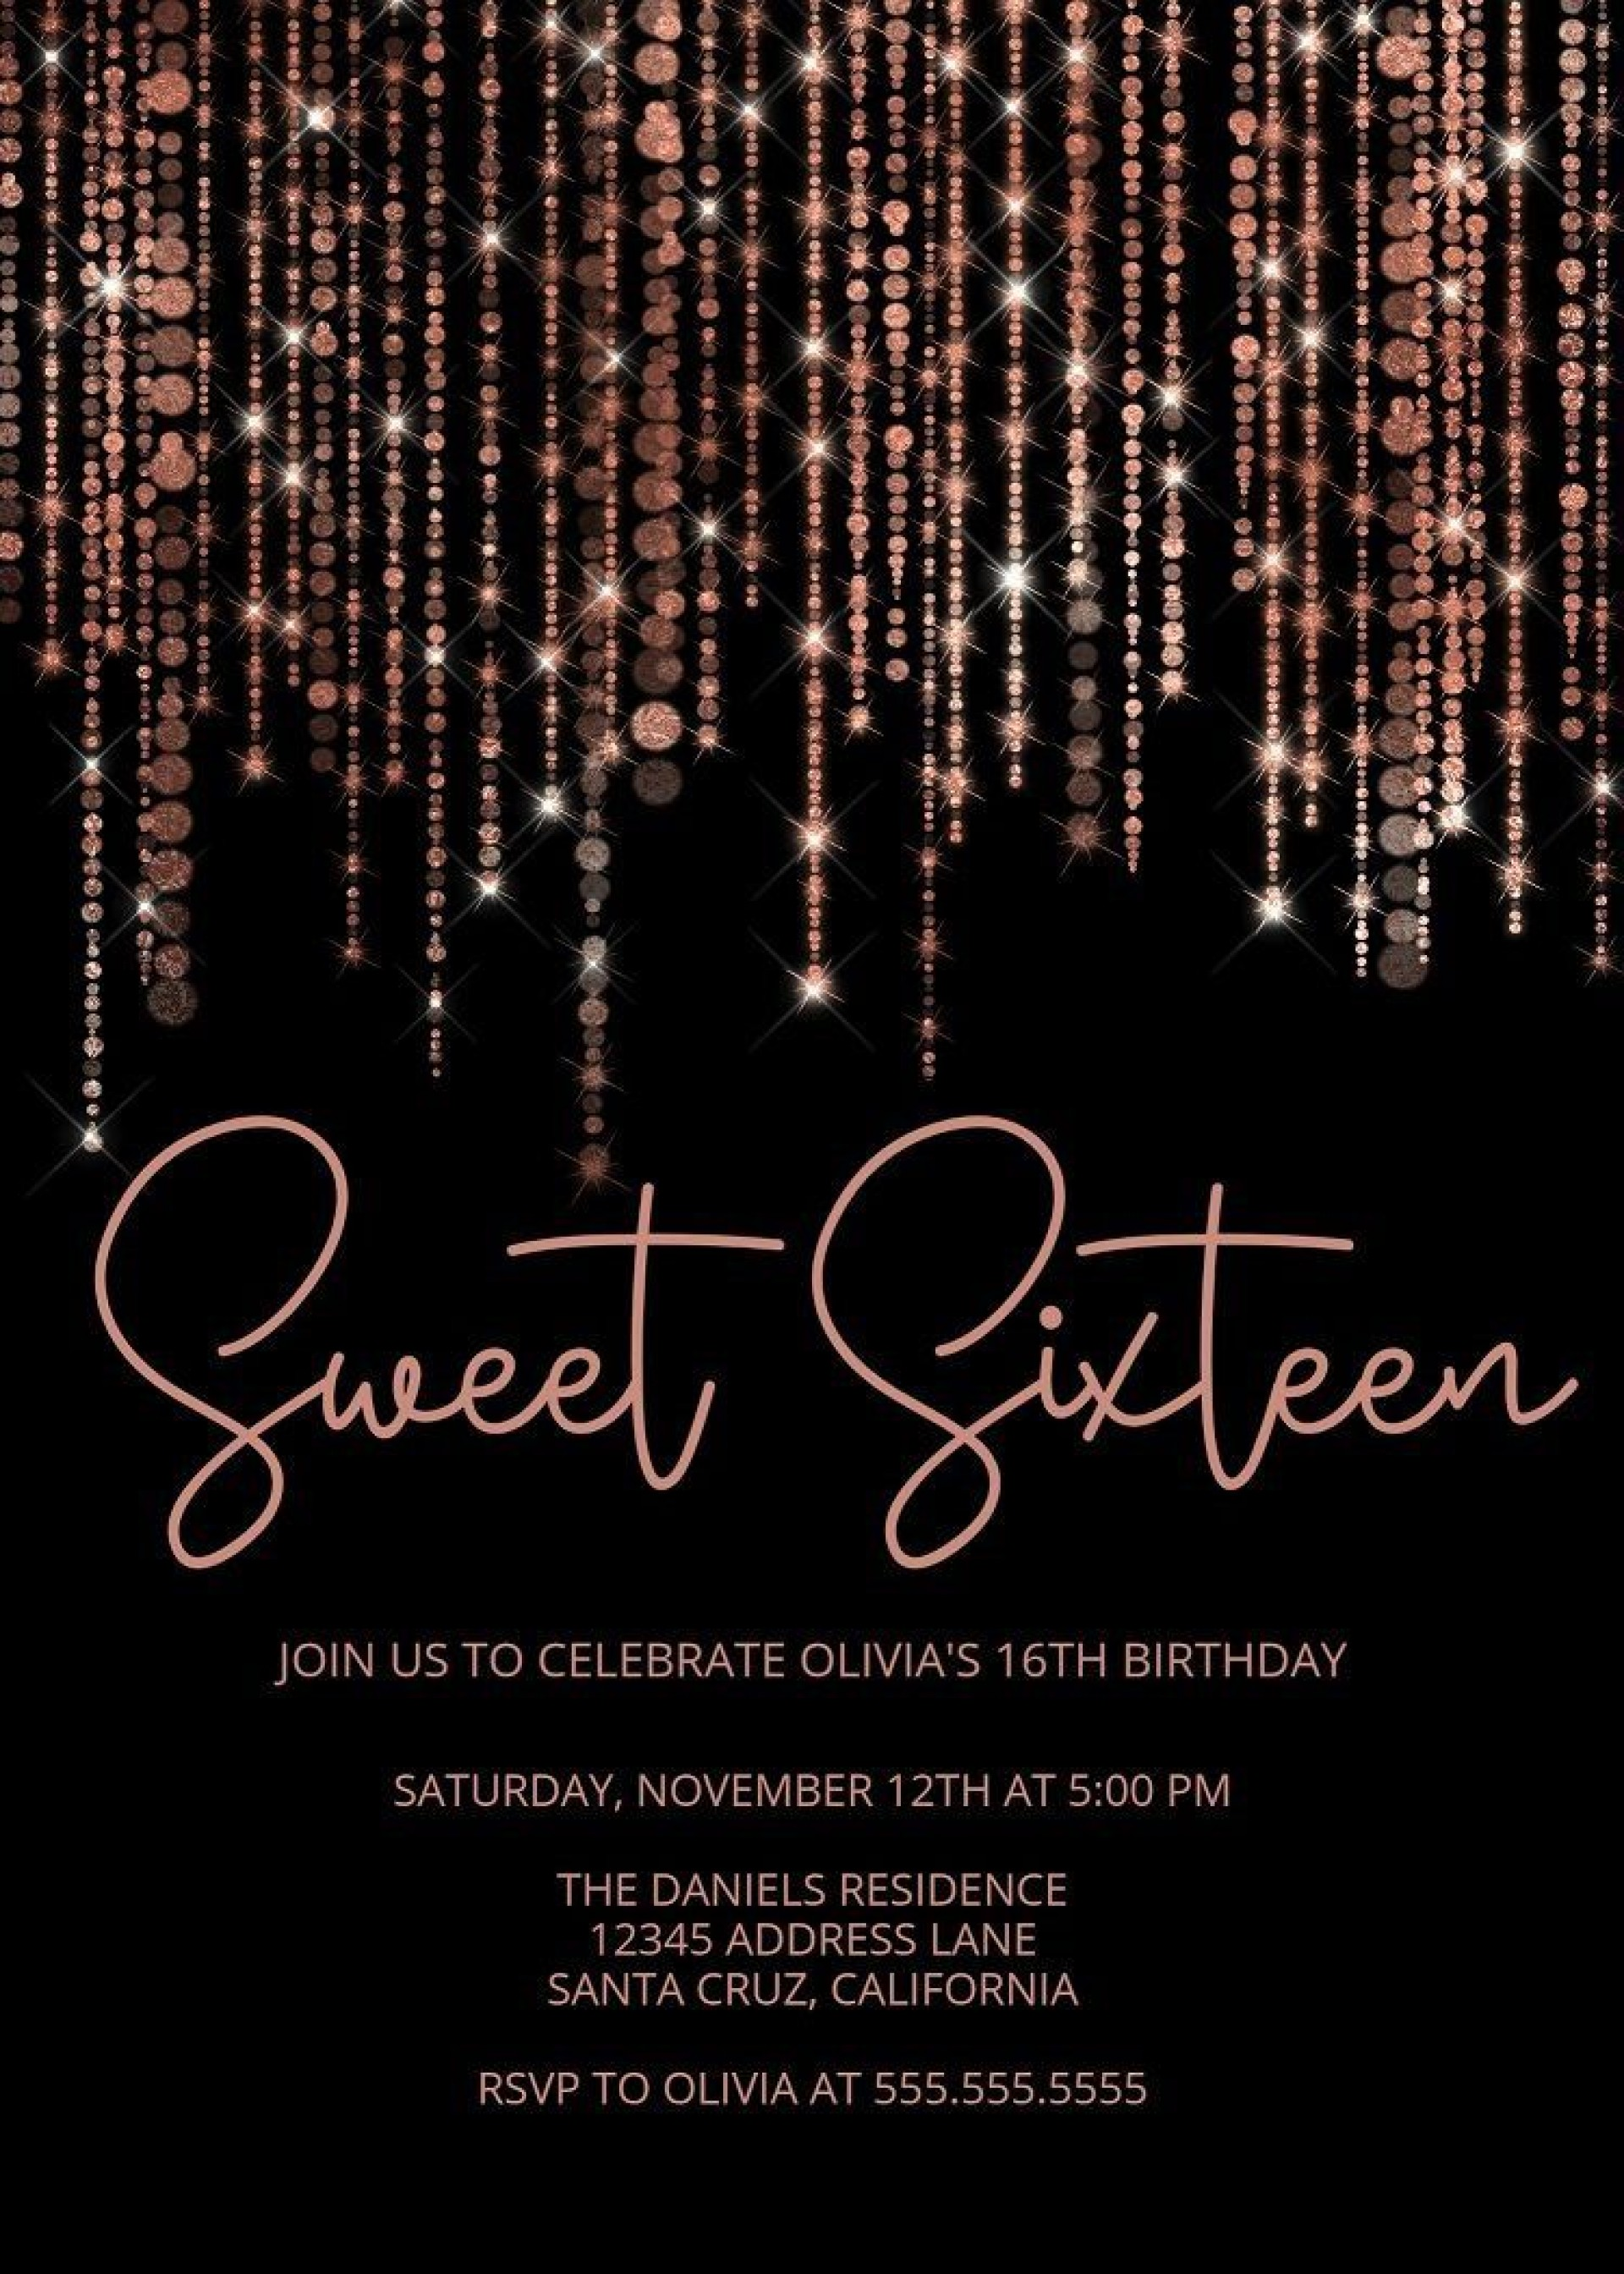 007 Excellent Sweet Sixteen Invitation Template Concept  Templates Blue 16 Party Free1920